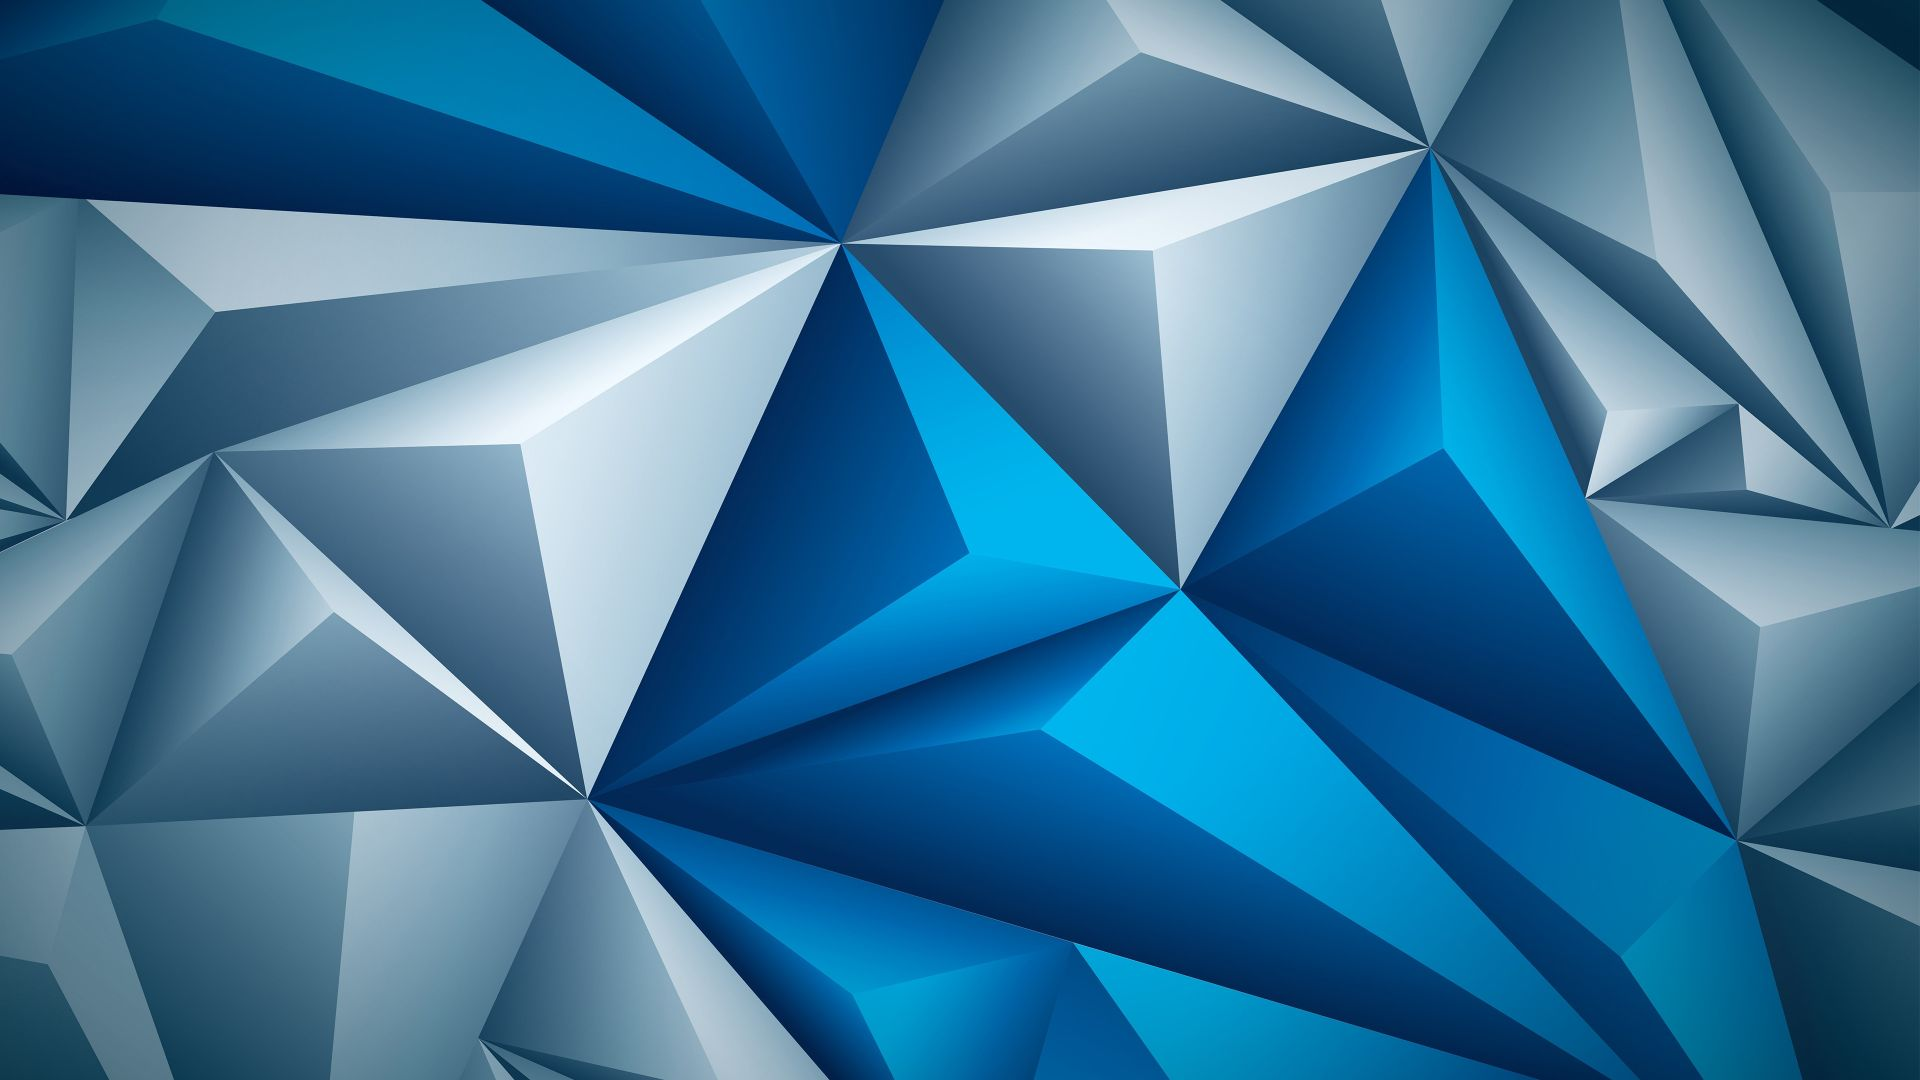 abstract, triangle, 3D, 4k (horizontal)